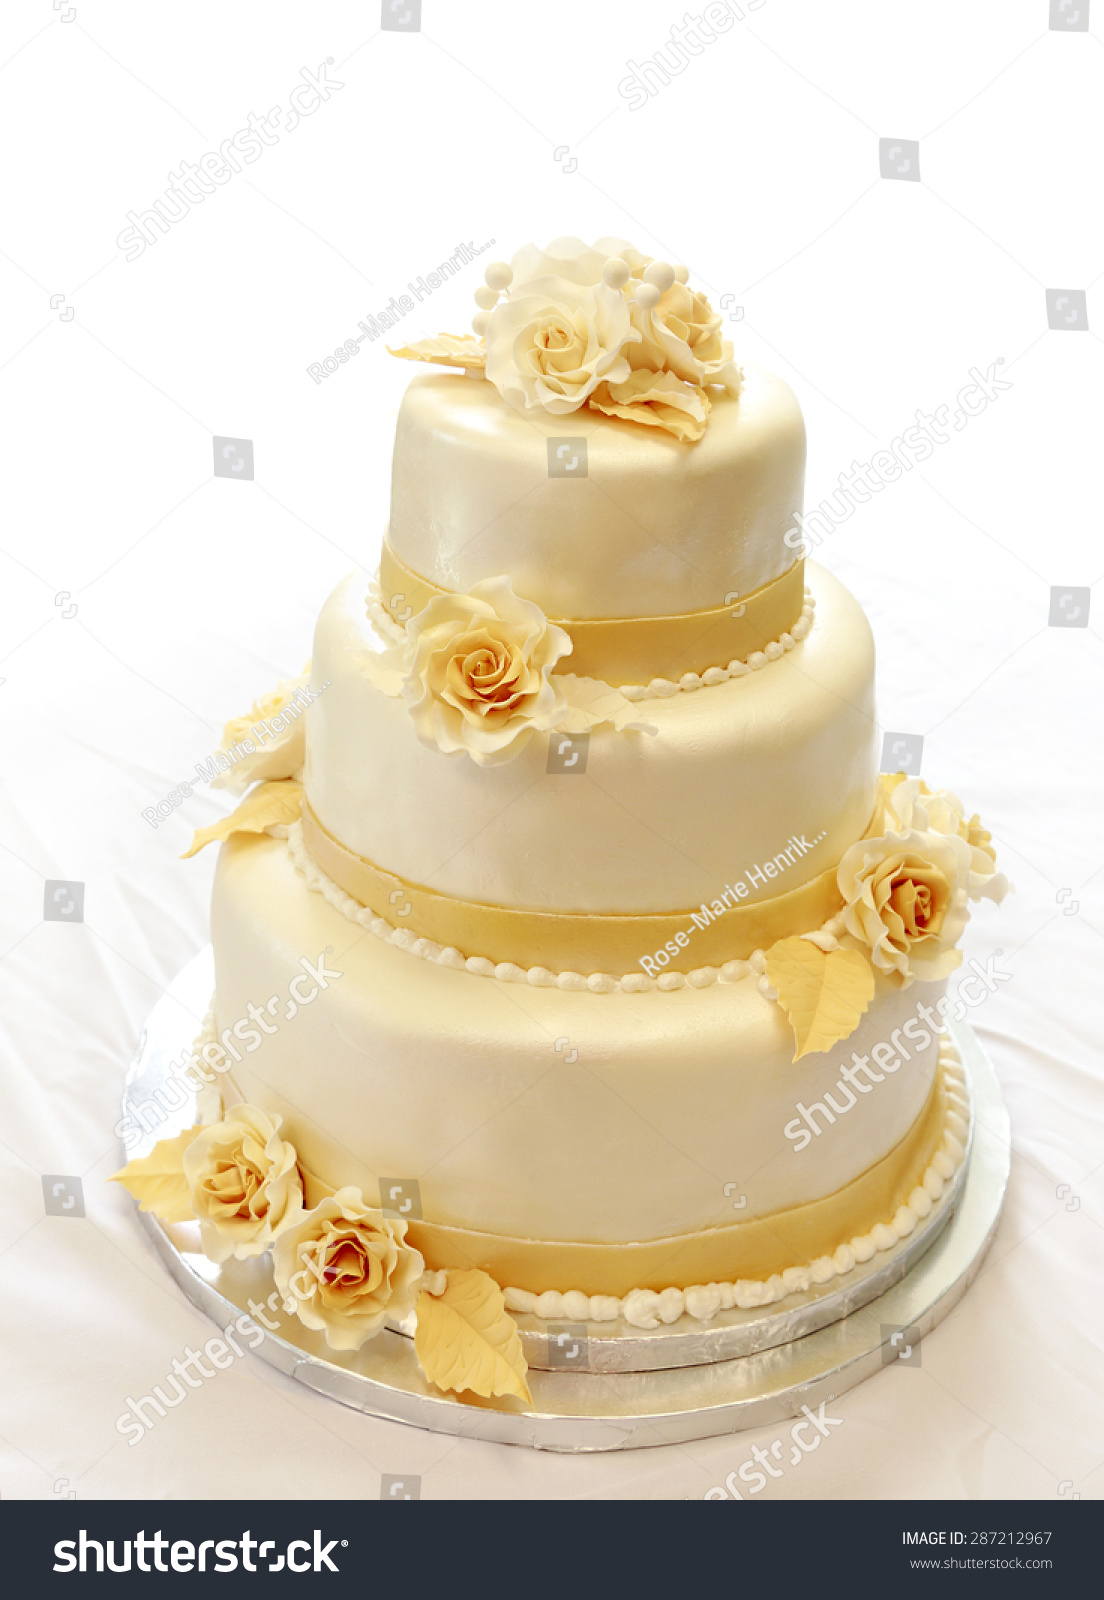 Wedding Cake On White Not Isolated Stock Photo (Edit Now) 287212967 ...